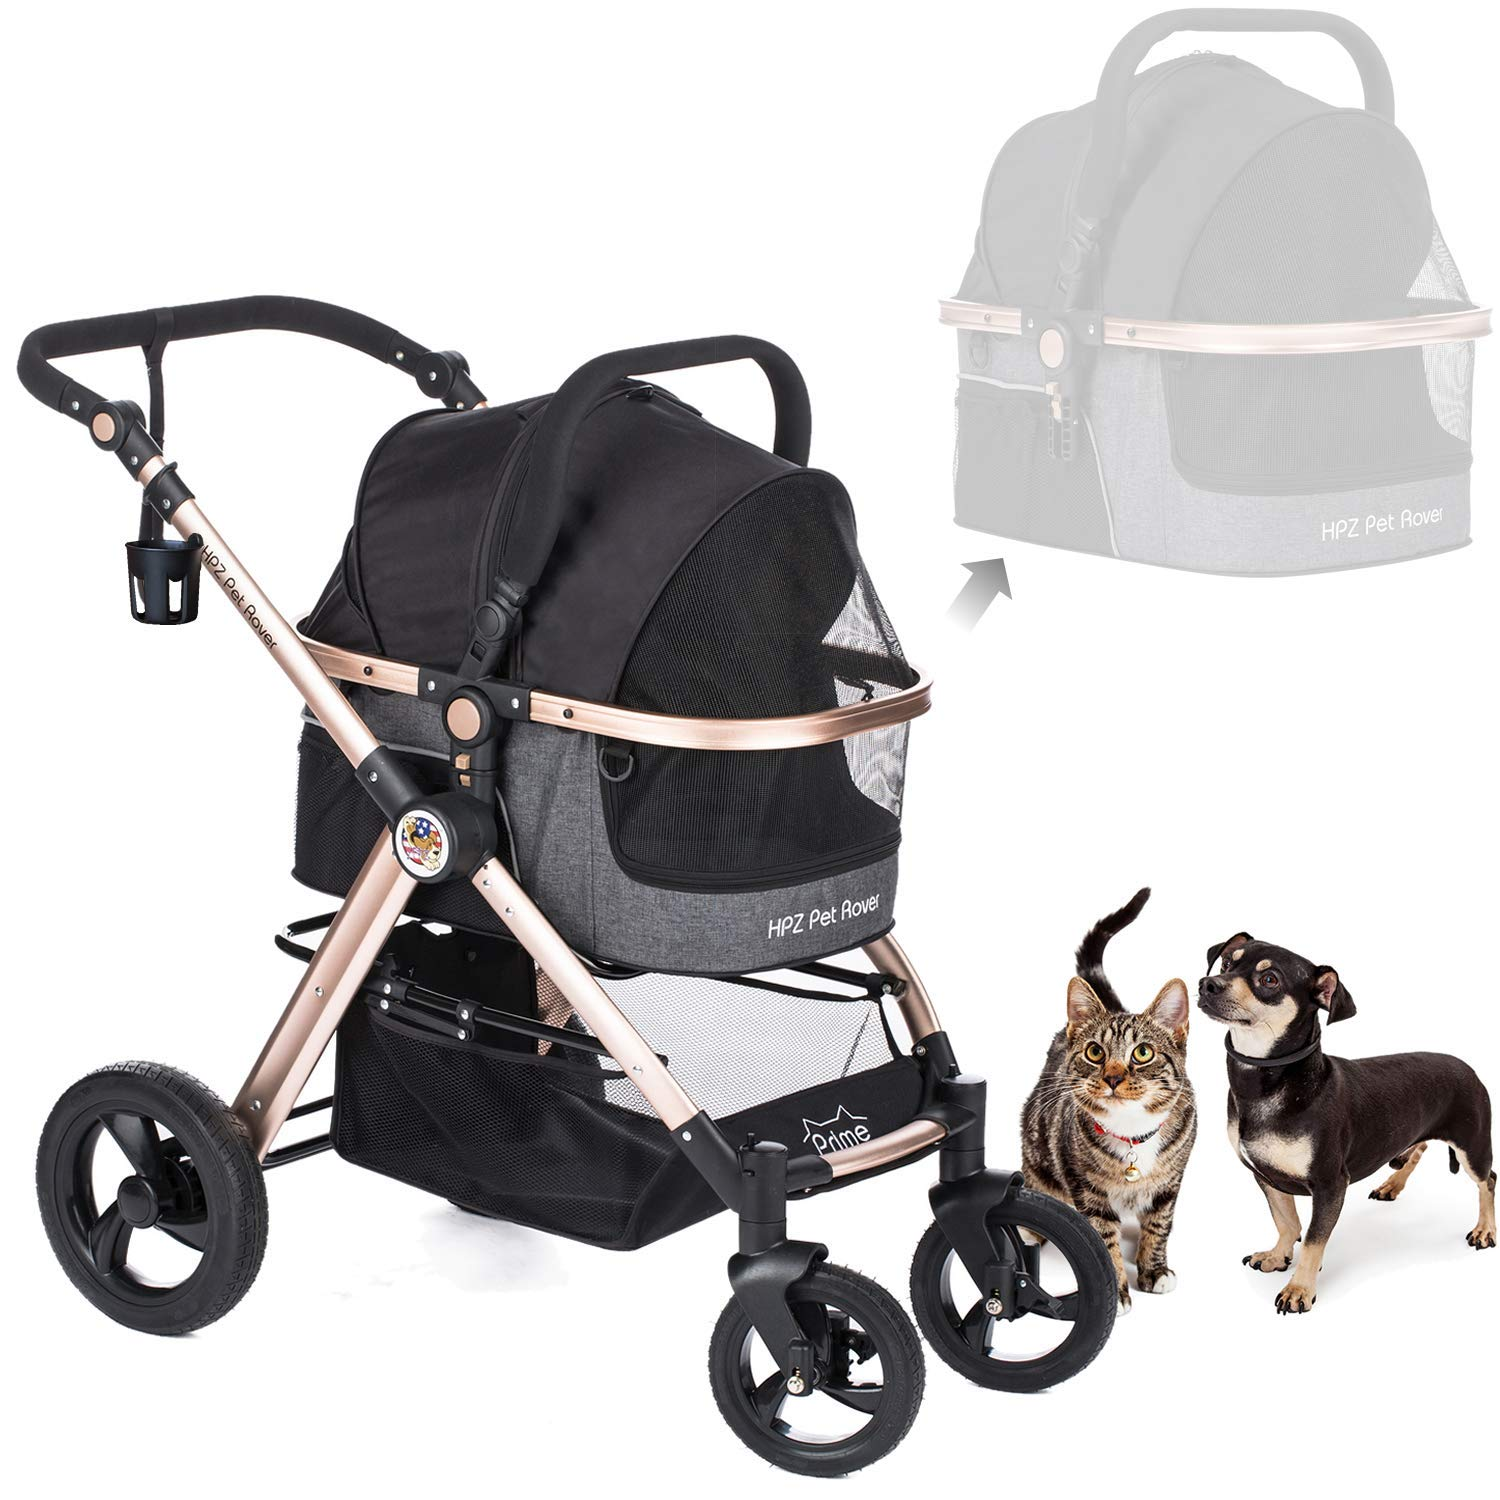 HPZ Pet Rover Prime 3-in-1 Luxury Dog Cat Pet Stroller Travel Carrier Car Seat Stroller with Detach Carrier Pump-Free Rubber Tires Aluminum Frame Reversible Handle for Medium Small Pets